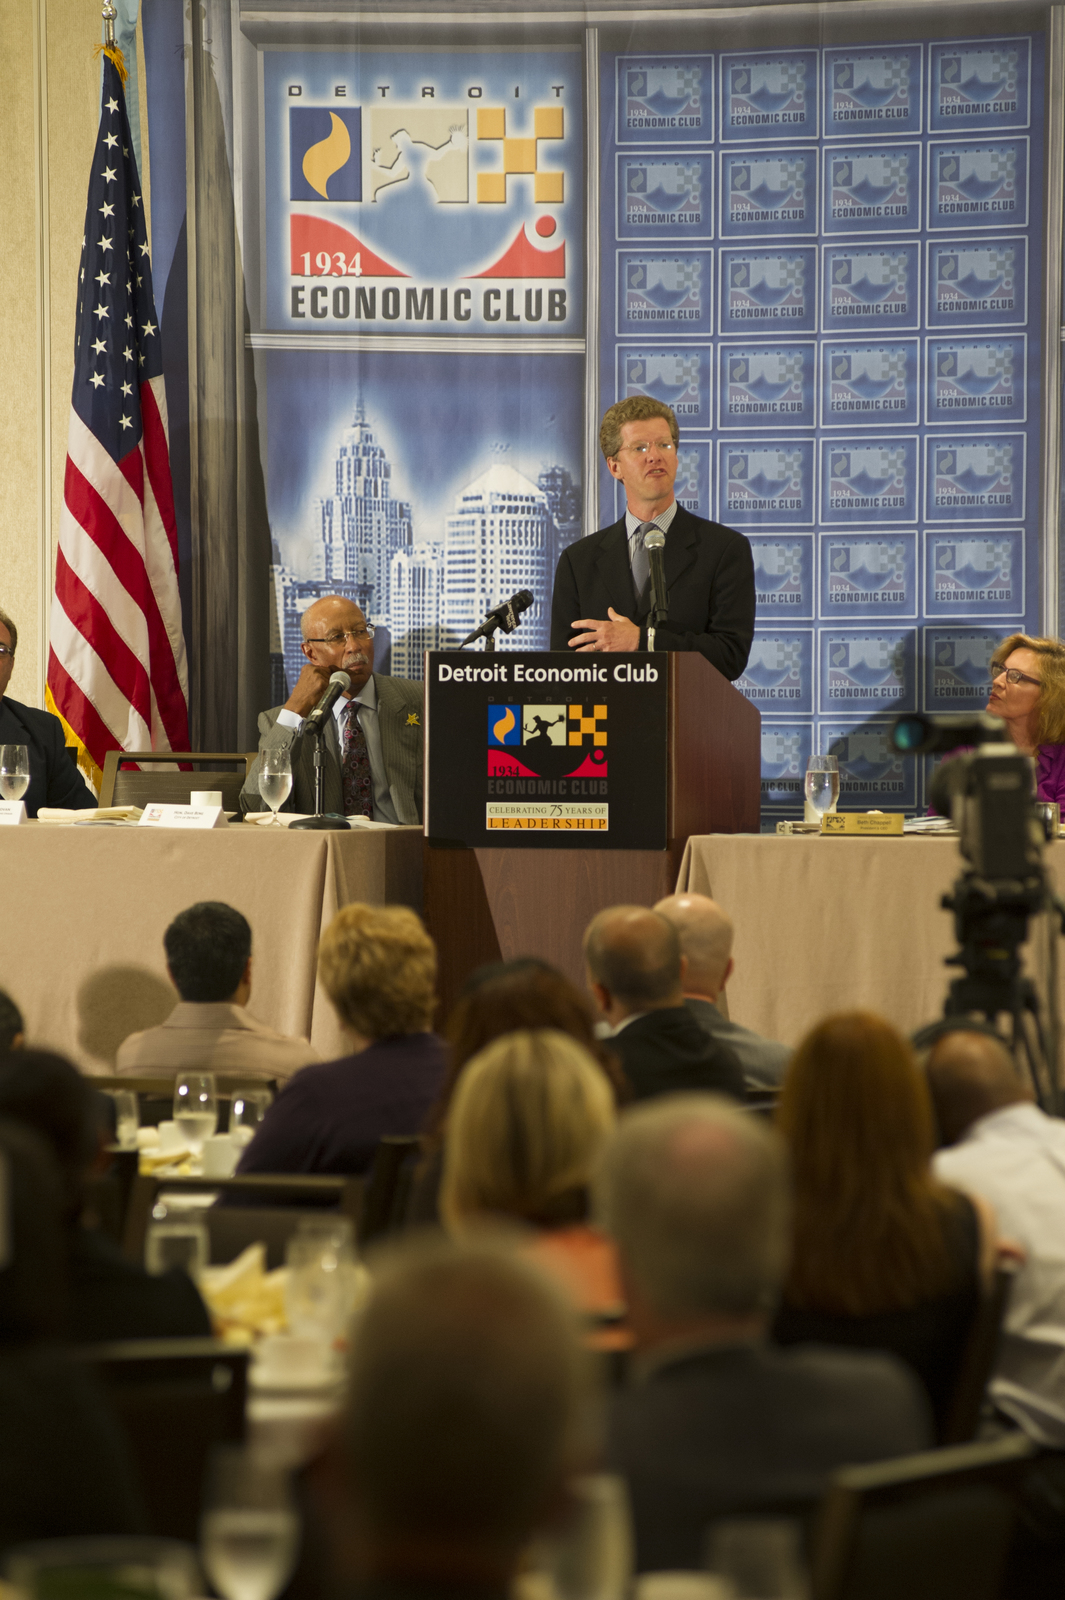 """Secretary Shaun Donovan in Detroit, Michigan, [where he met and held a press conference with Detroit Mayor Dave Bing and other city leaders, and spoke at the Detroit Economic Club on the challenges facing older industrial cities and the new, interagency approaches being applied to solve those problems: """"Toward a New Economic Engine: Rebuilding the Cities That Built America with the Next Generation of Civic Leaders""""]"""